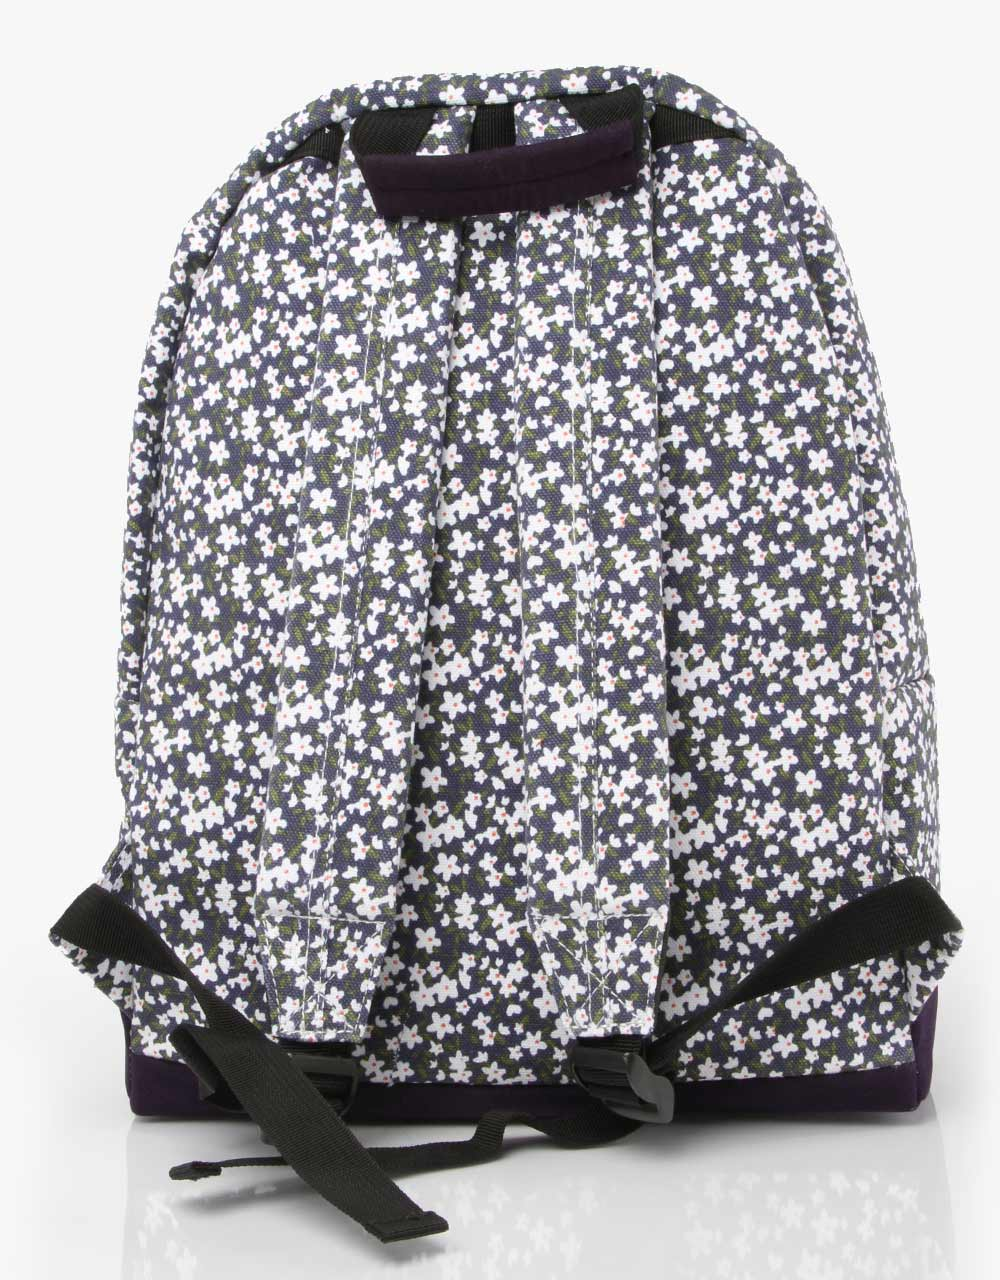 Рюкзак Mi-Pac  Premium Floral Ditsy Floral Navy